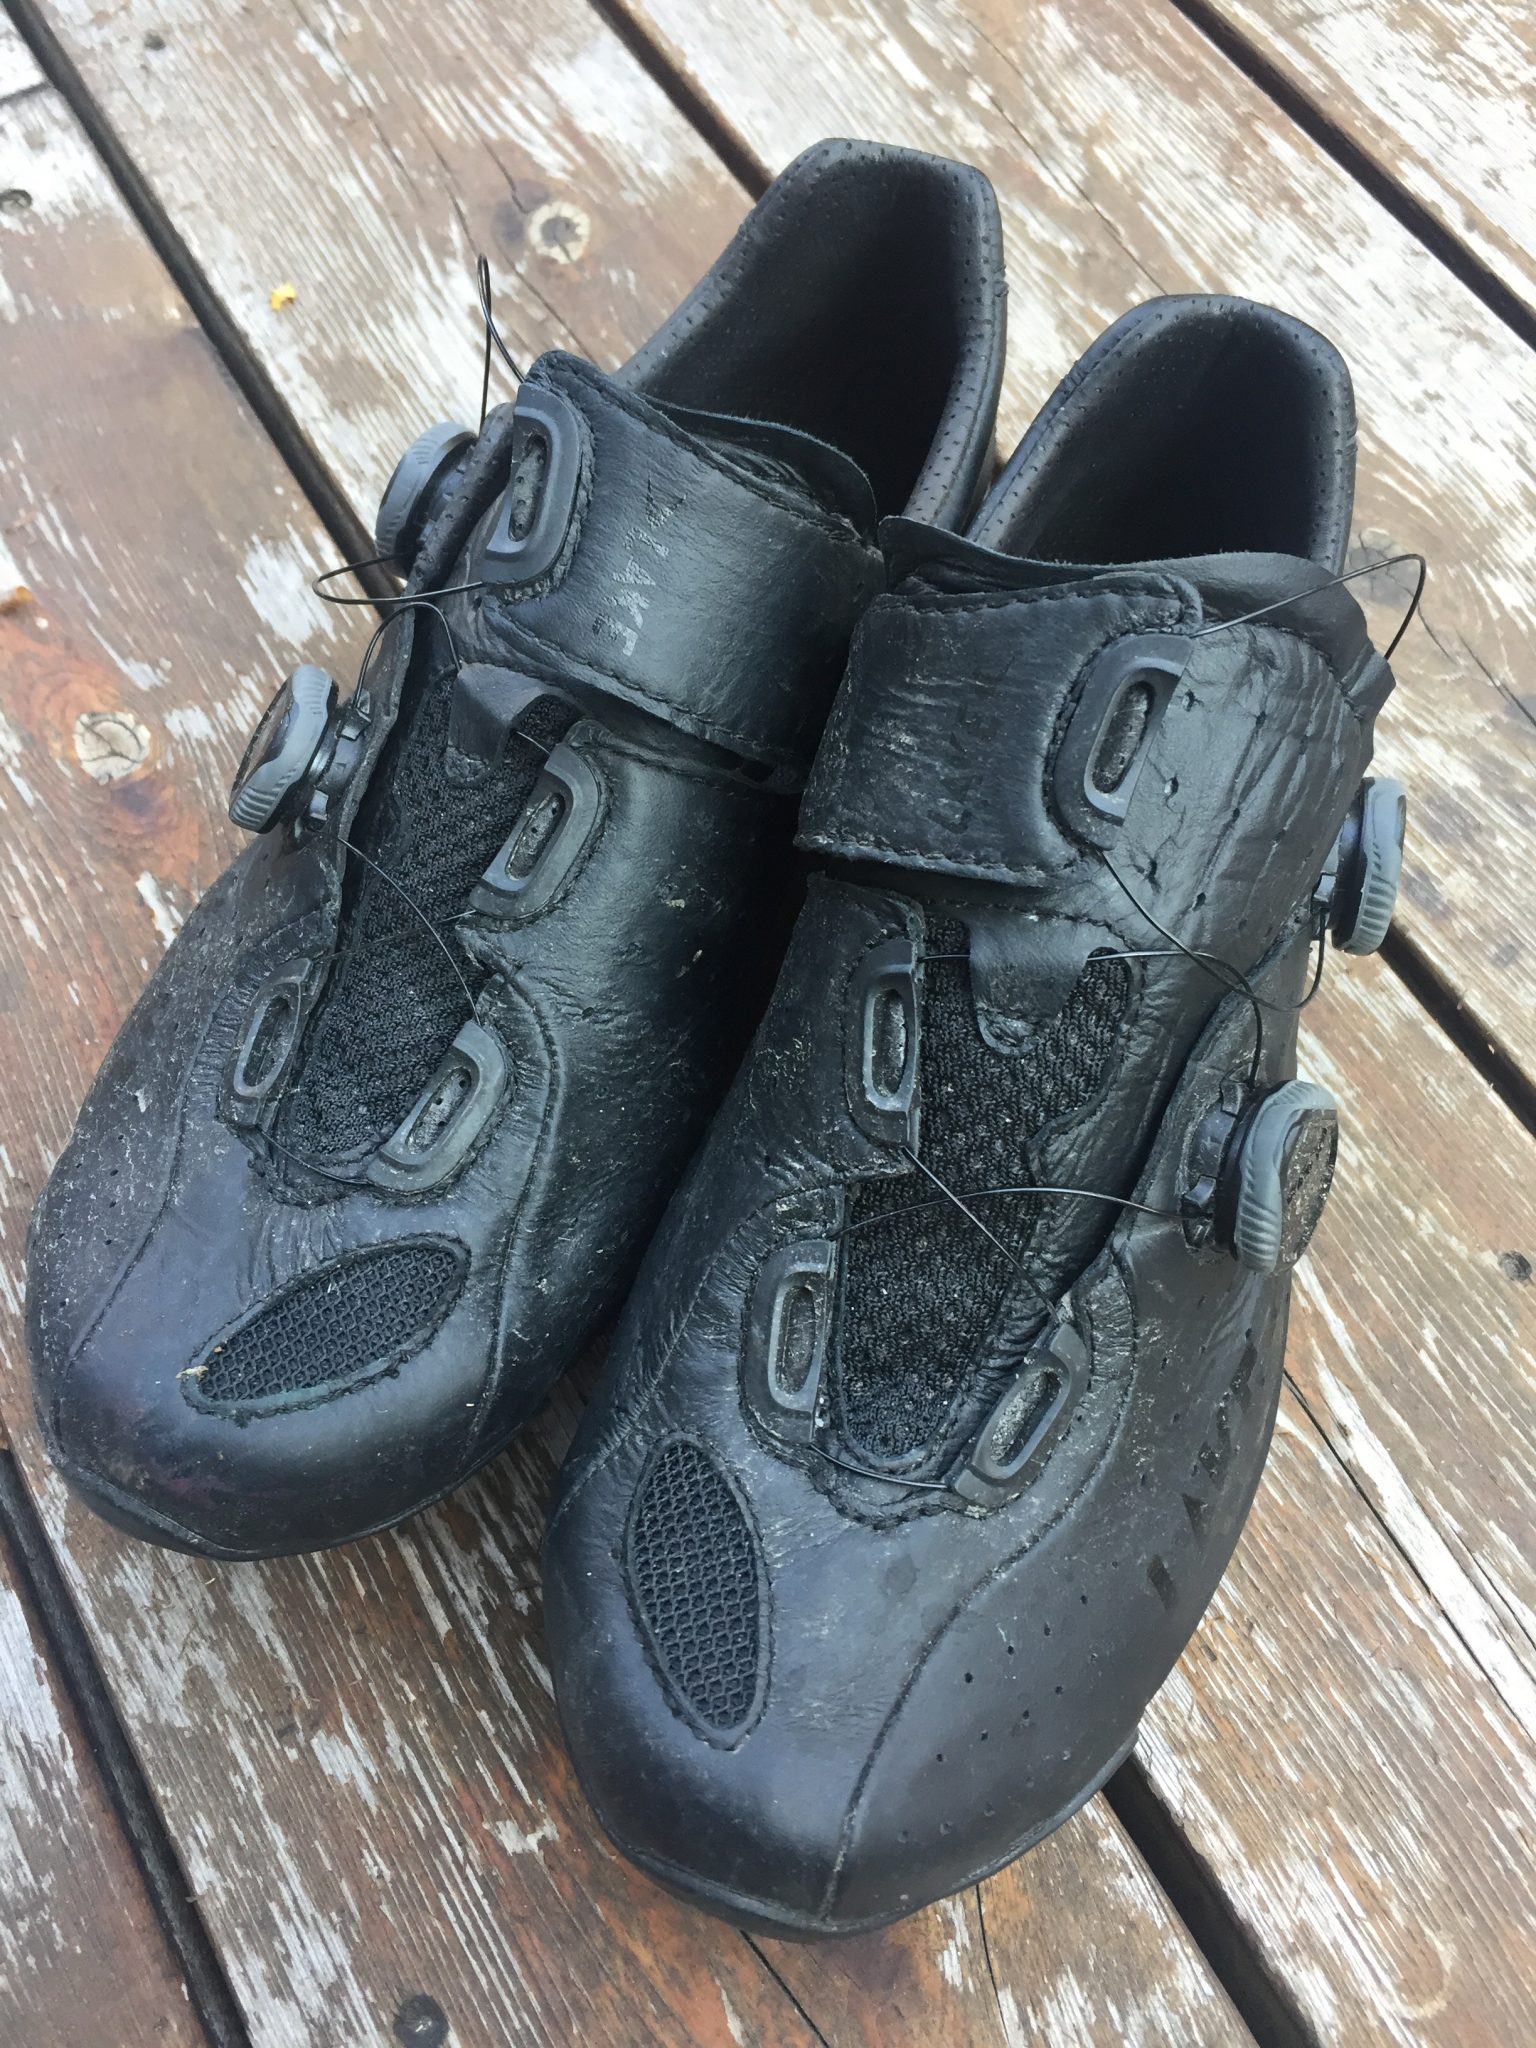 Road cycling shoes for wide feet: what